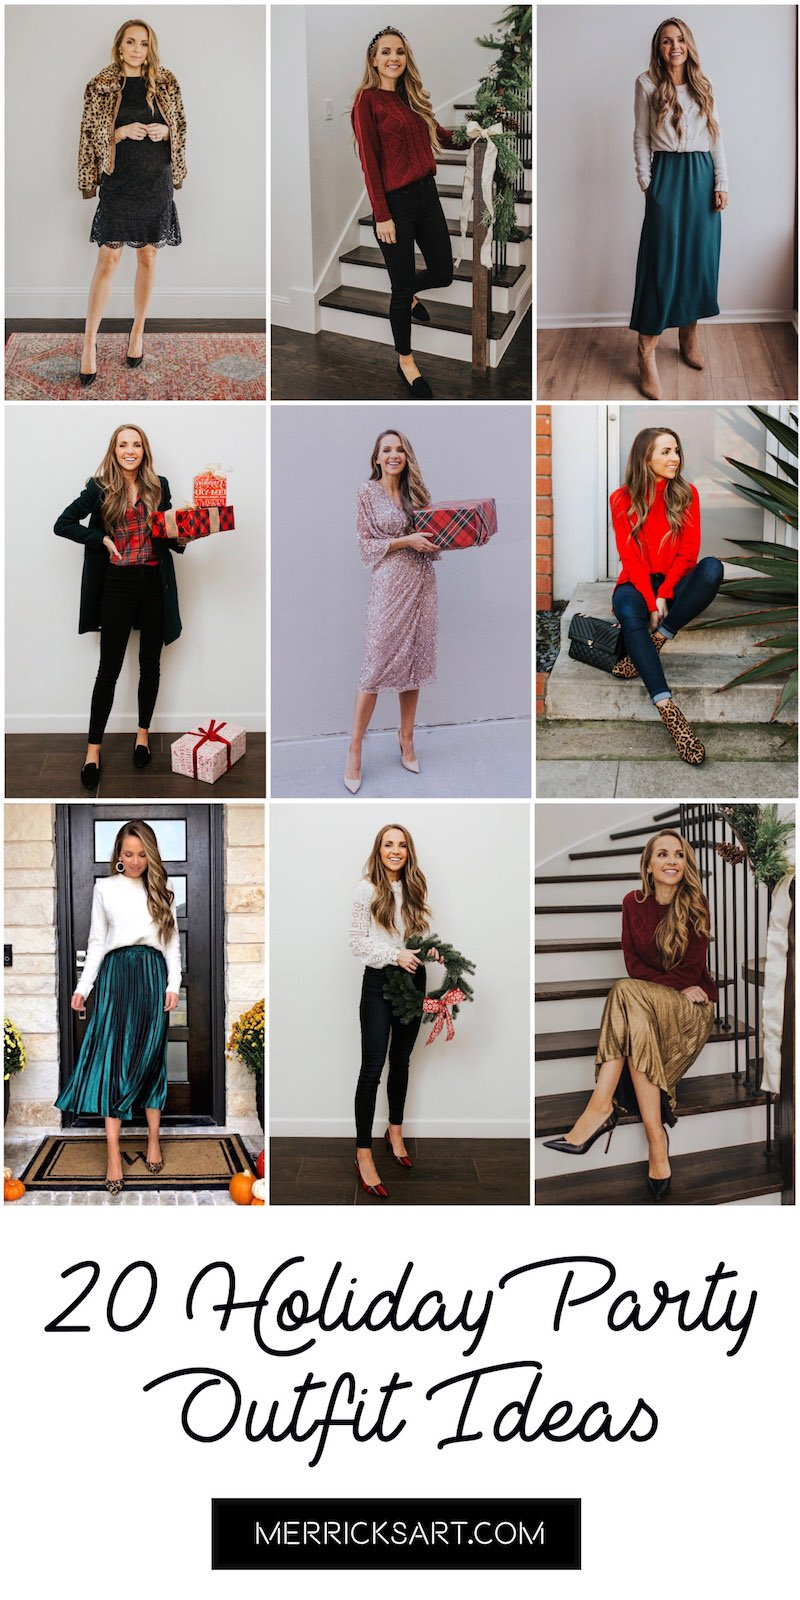 Christmas Party Outfit (5+ Christmas Outfit Ideas from Dressy to